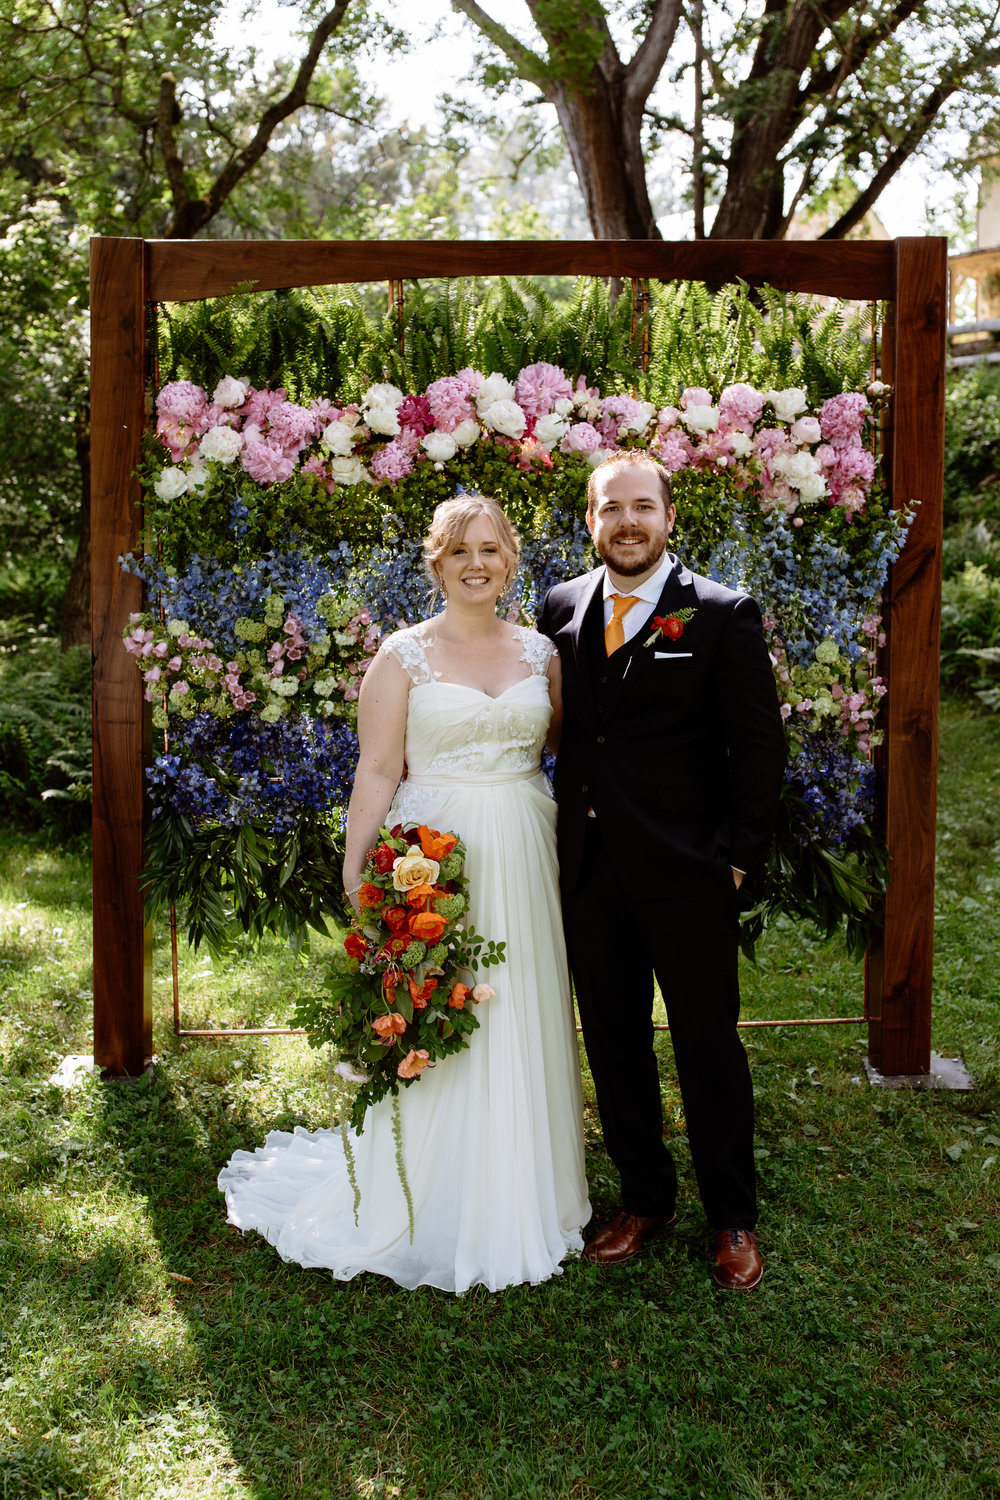 Amazing floral wedding ceremony backdrop at Arboretum wedding in June by Philadelphia wedding planner Heart & Dash-221.jpg